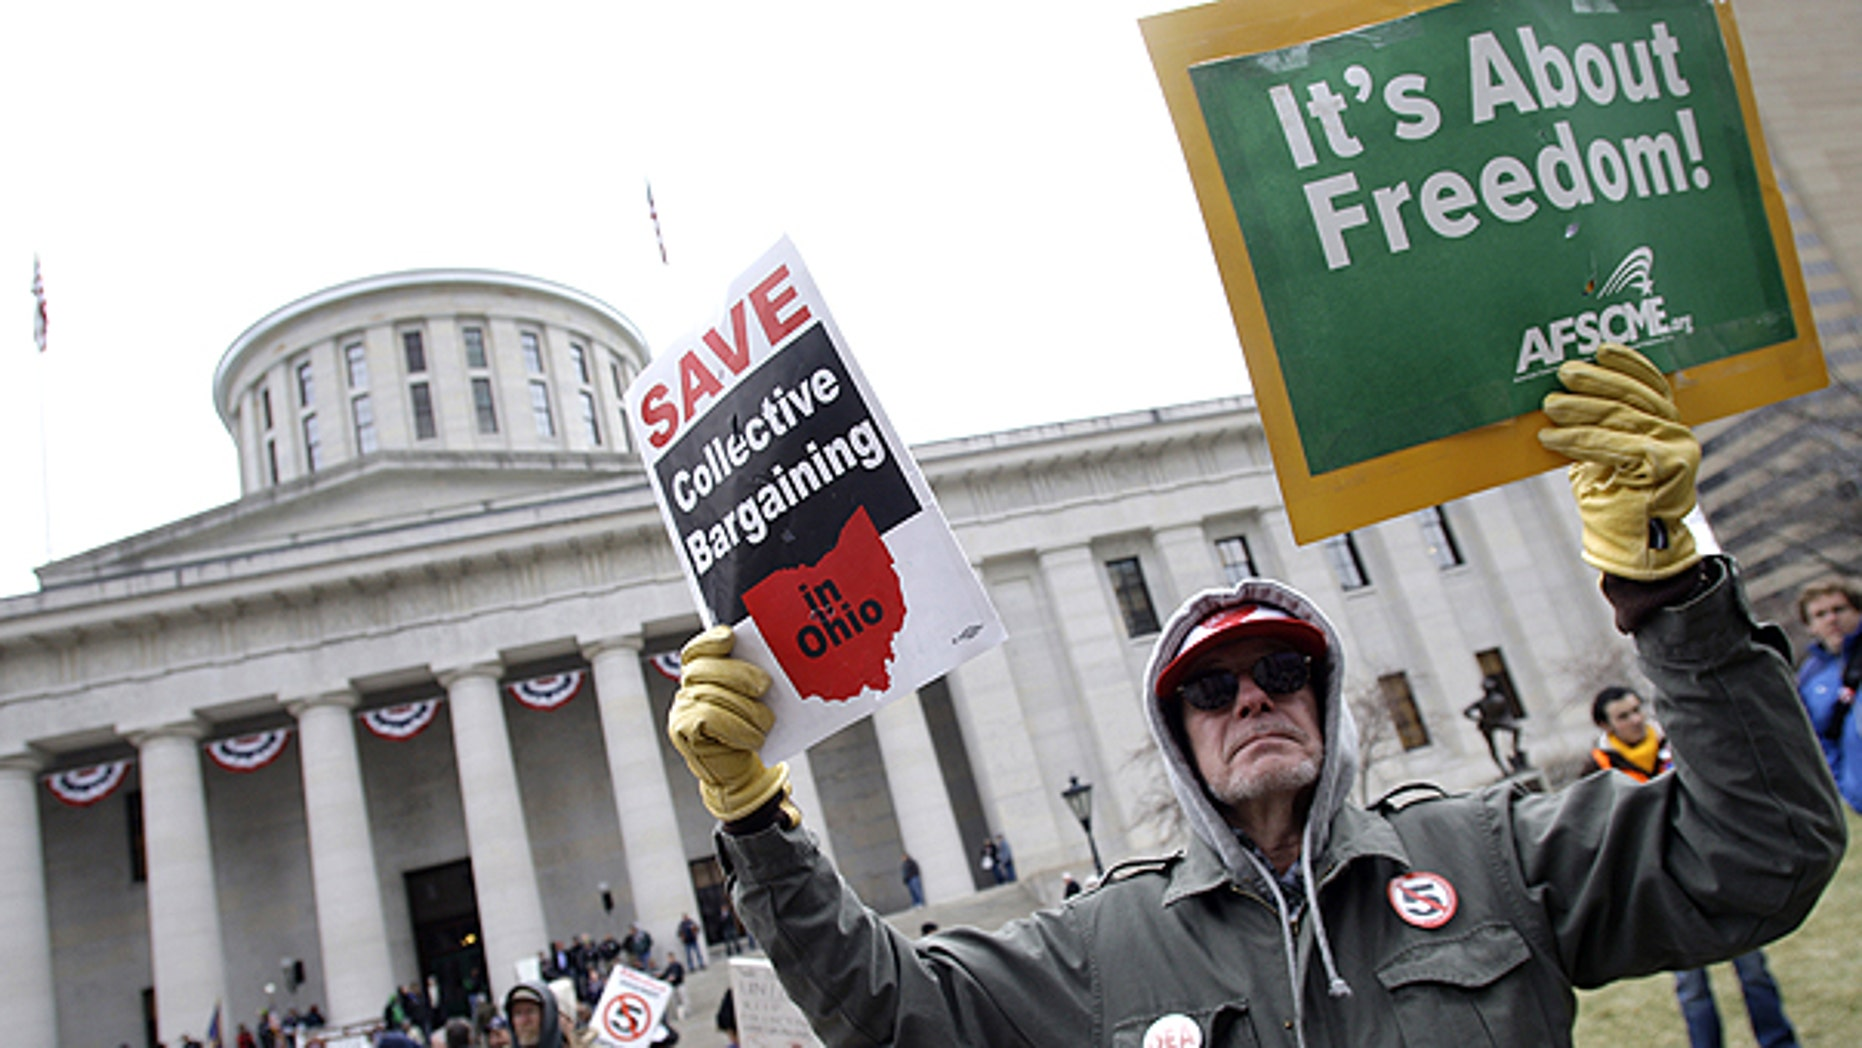 March 29: Tom Fagan, of Dayton, protests against Senate Bill 5 at the Ohio statehouse in Columbus, Ohio.